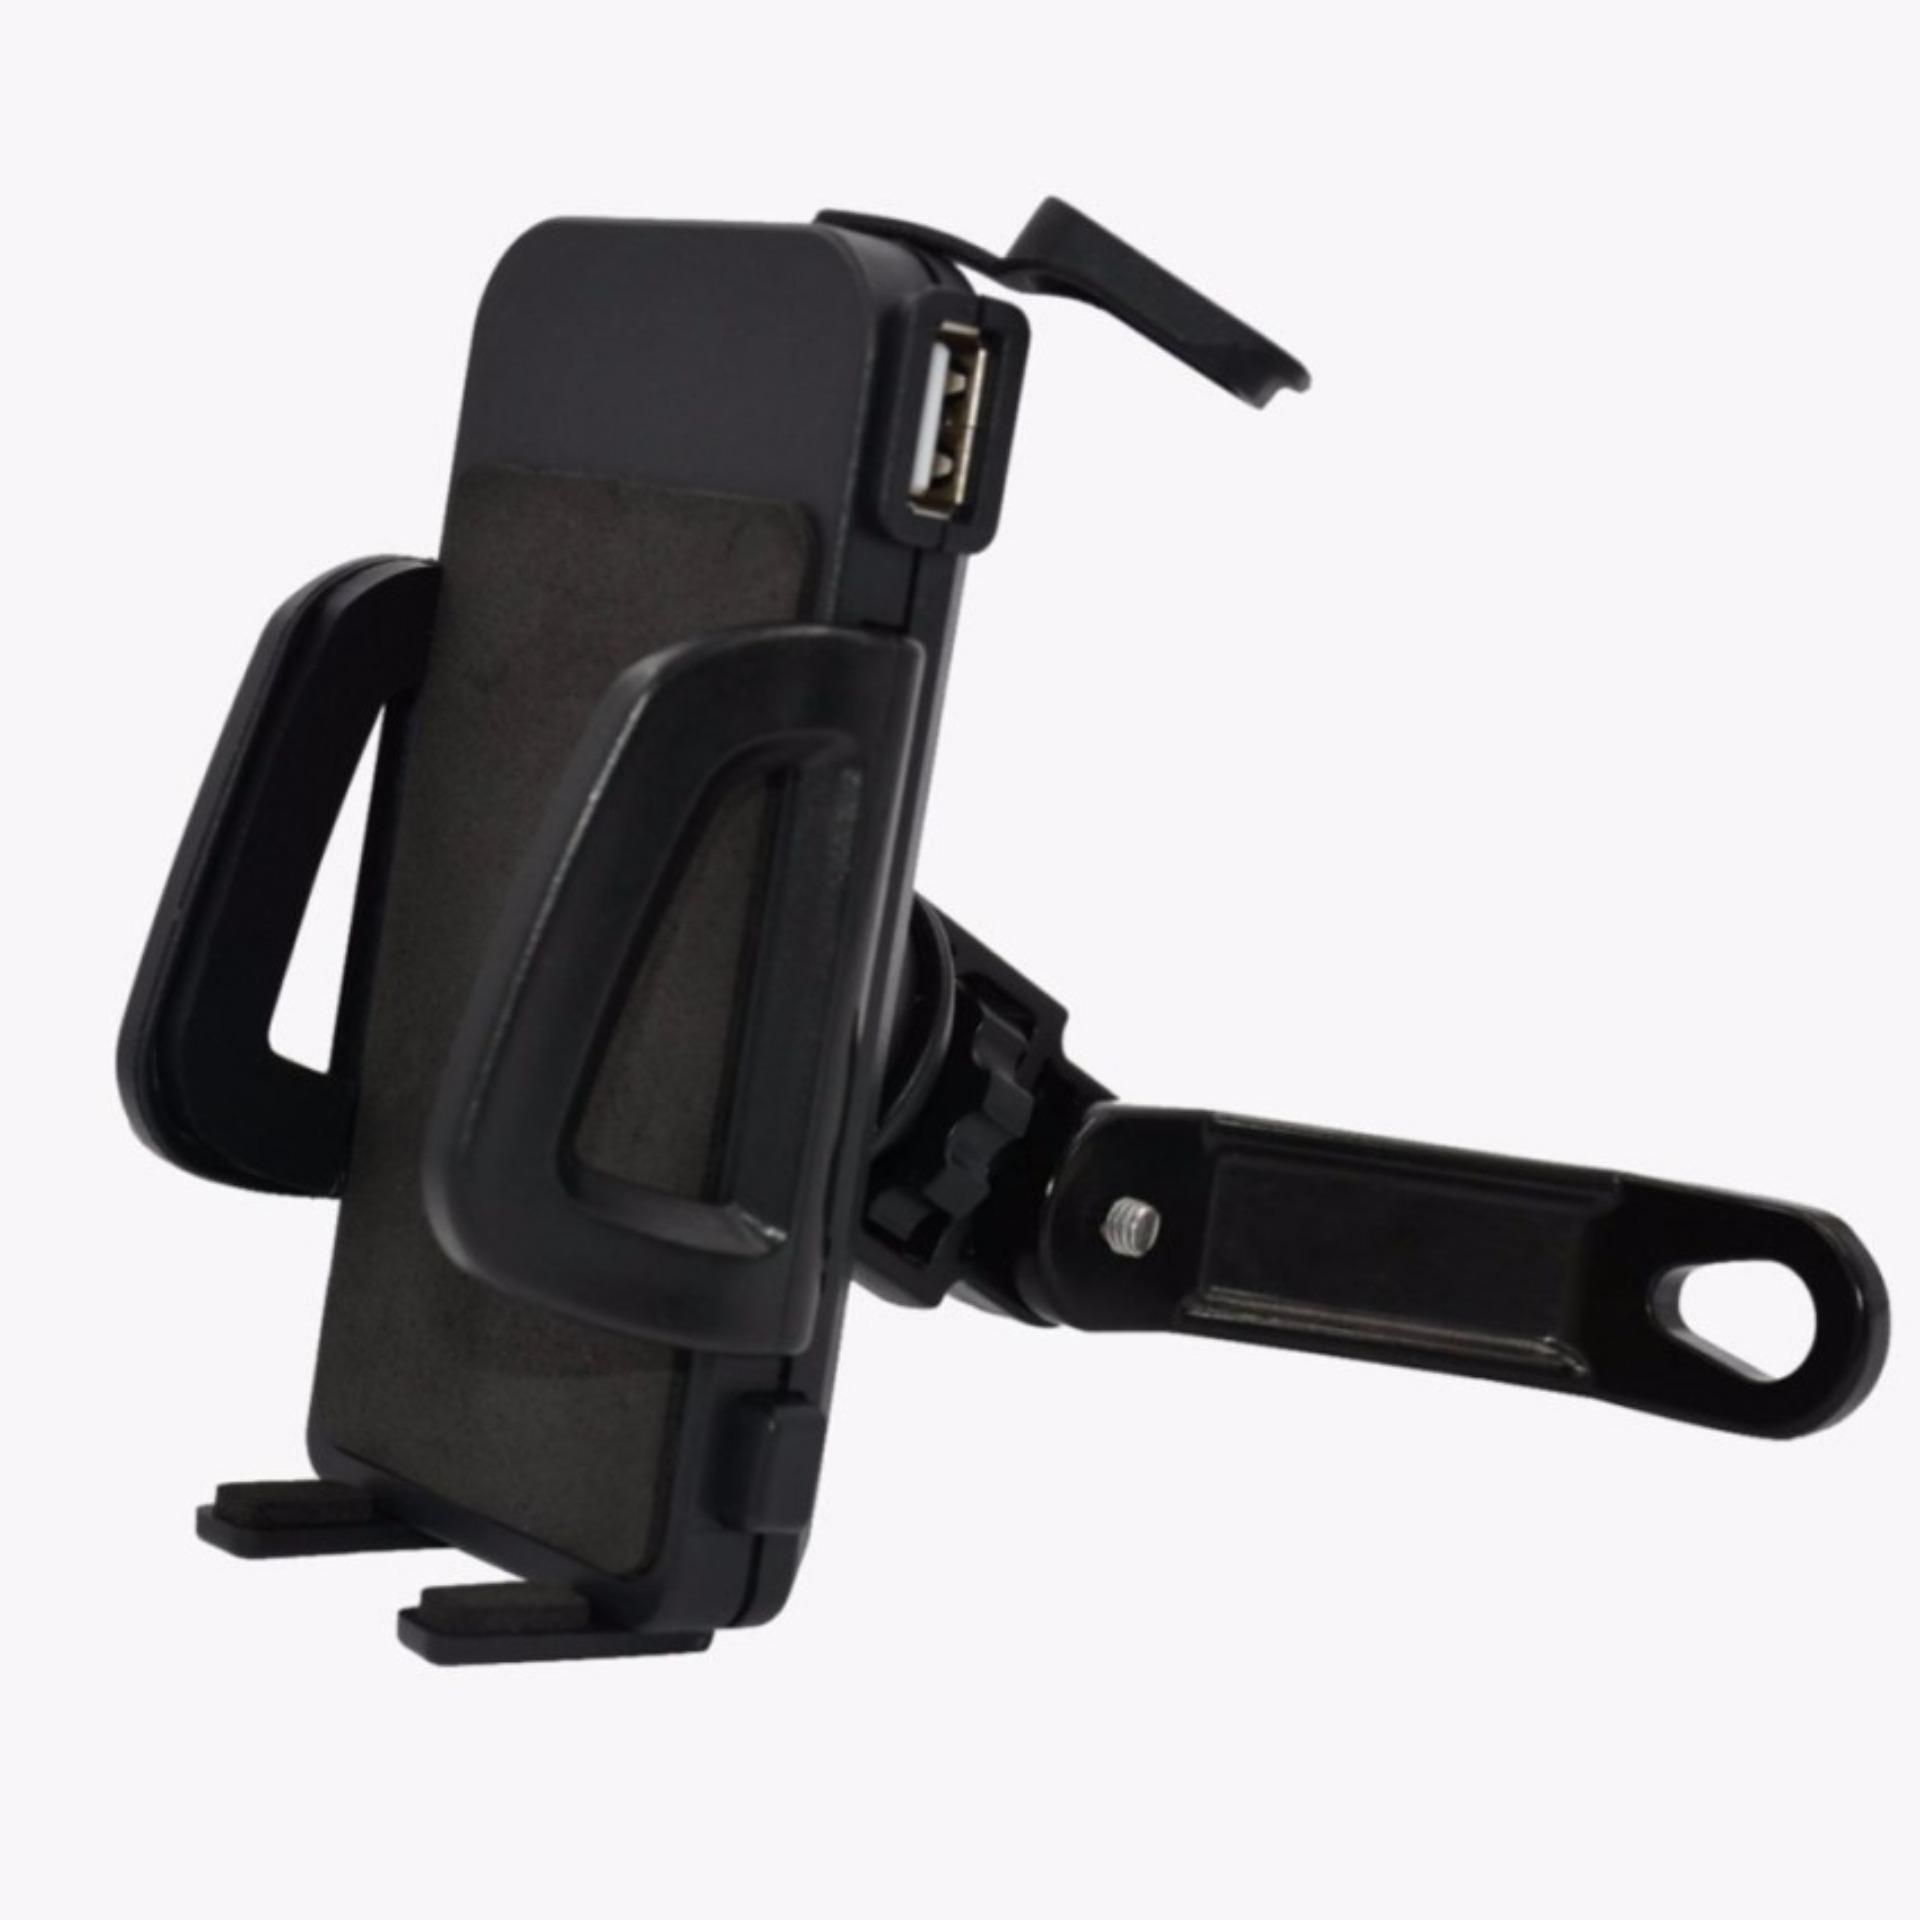 Diskon Penjualan Unique Holder Motor With Usb Charger Smartphone For Fast Aki Motorcycle Spion Untuk